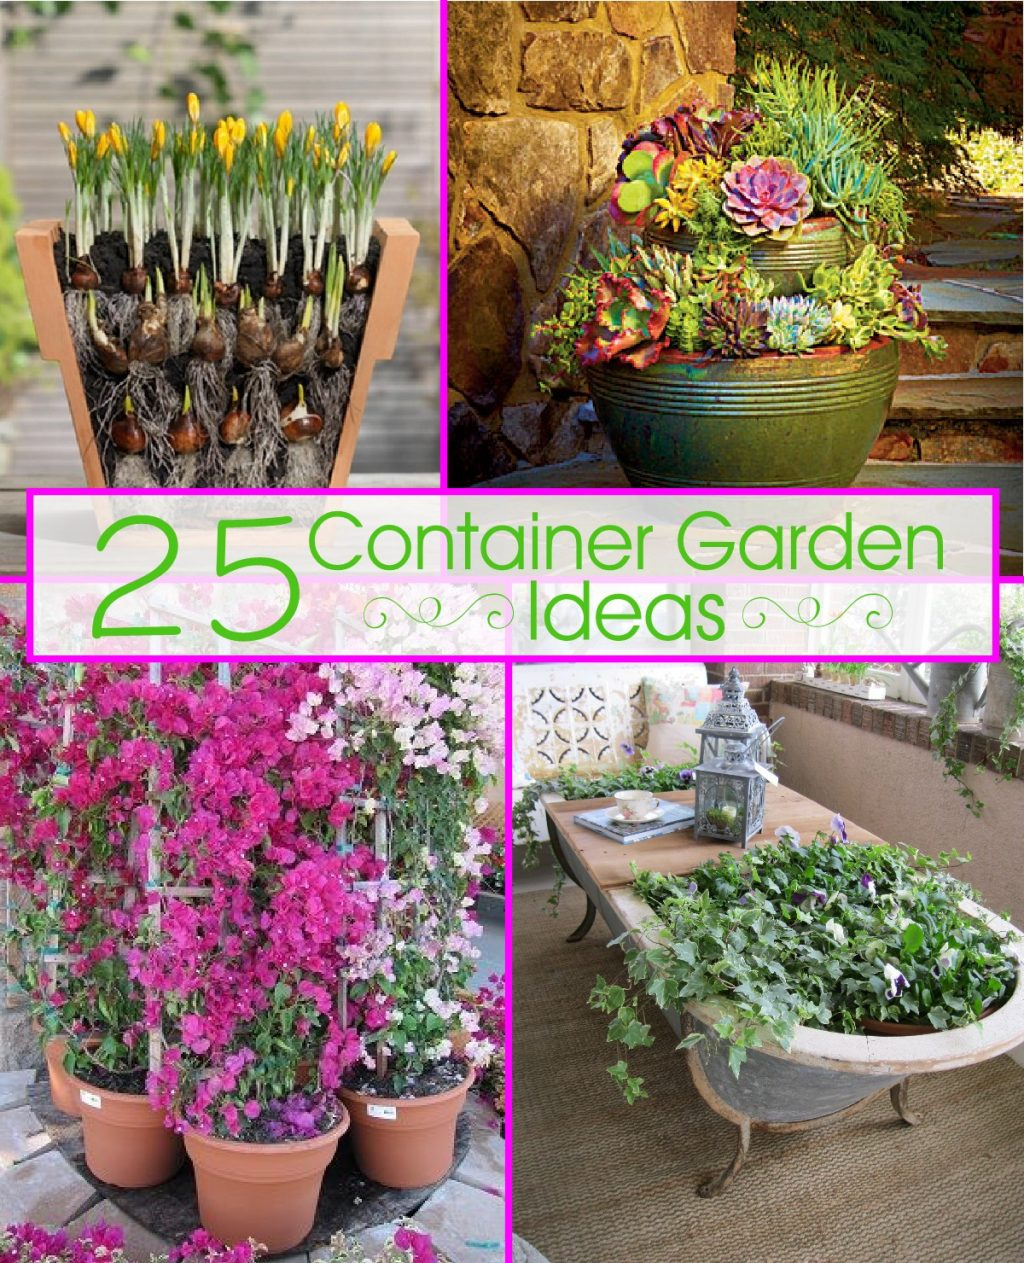 Container Garden Ideas best 25 container gardening ideas on pinterest Container Garden Ideas